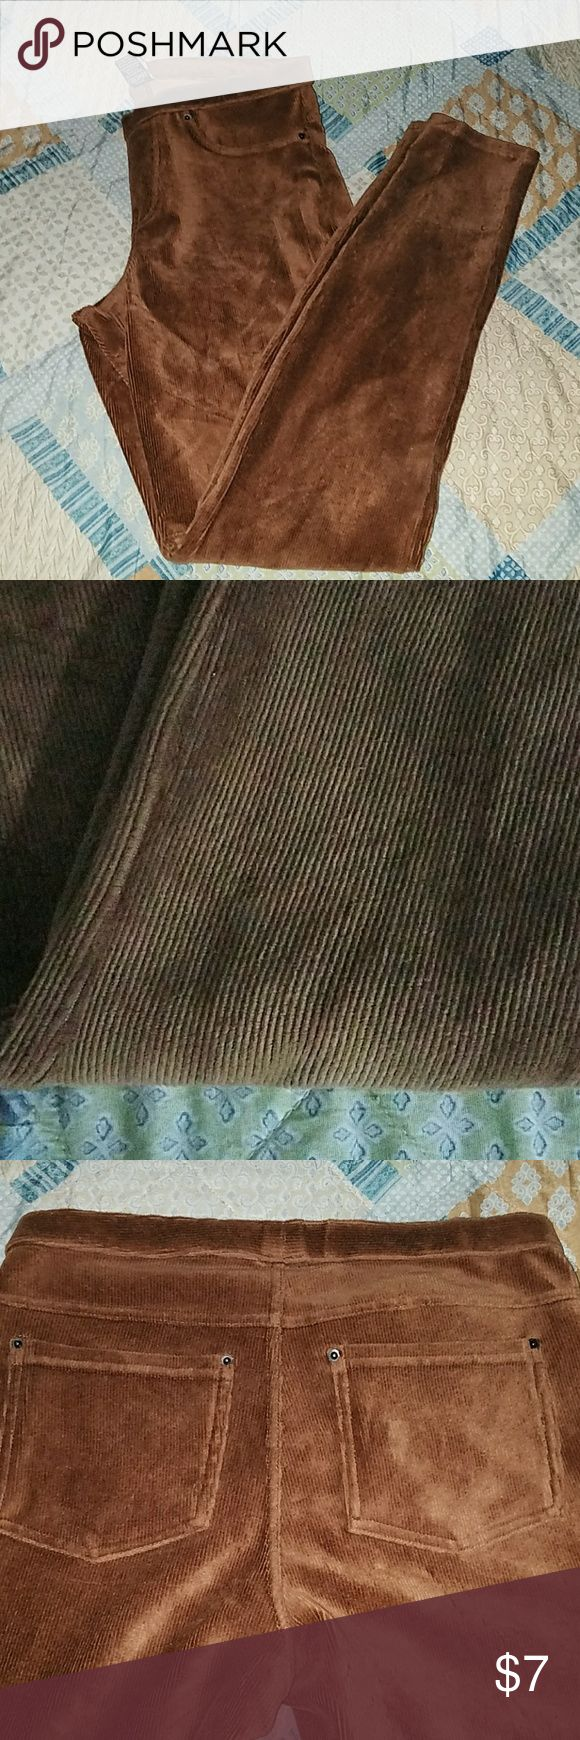 Corduroy leggings memoi Corduroy leggings memoi  Brown Size small/medium Two back pockets Great condition Pants Leggings